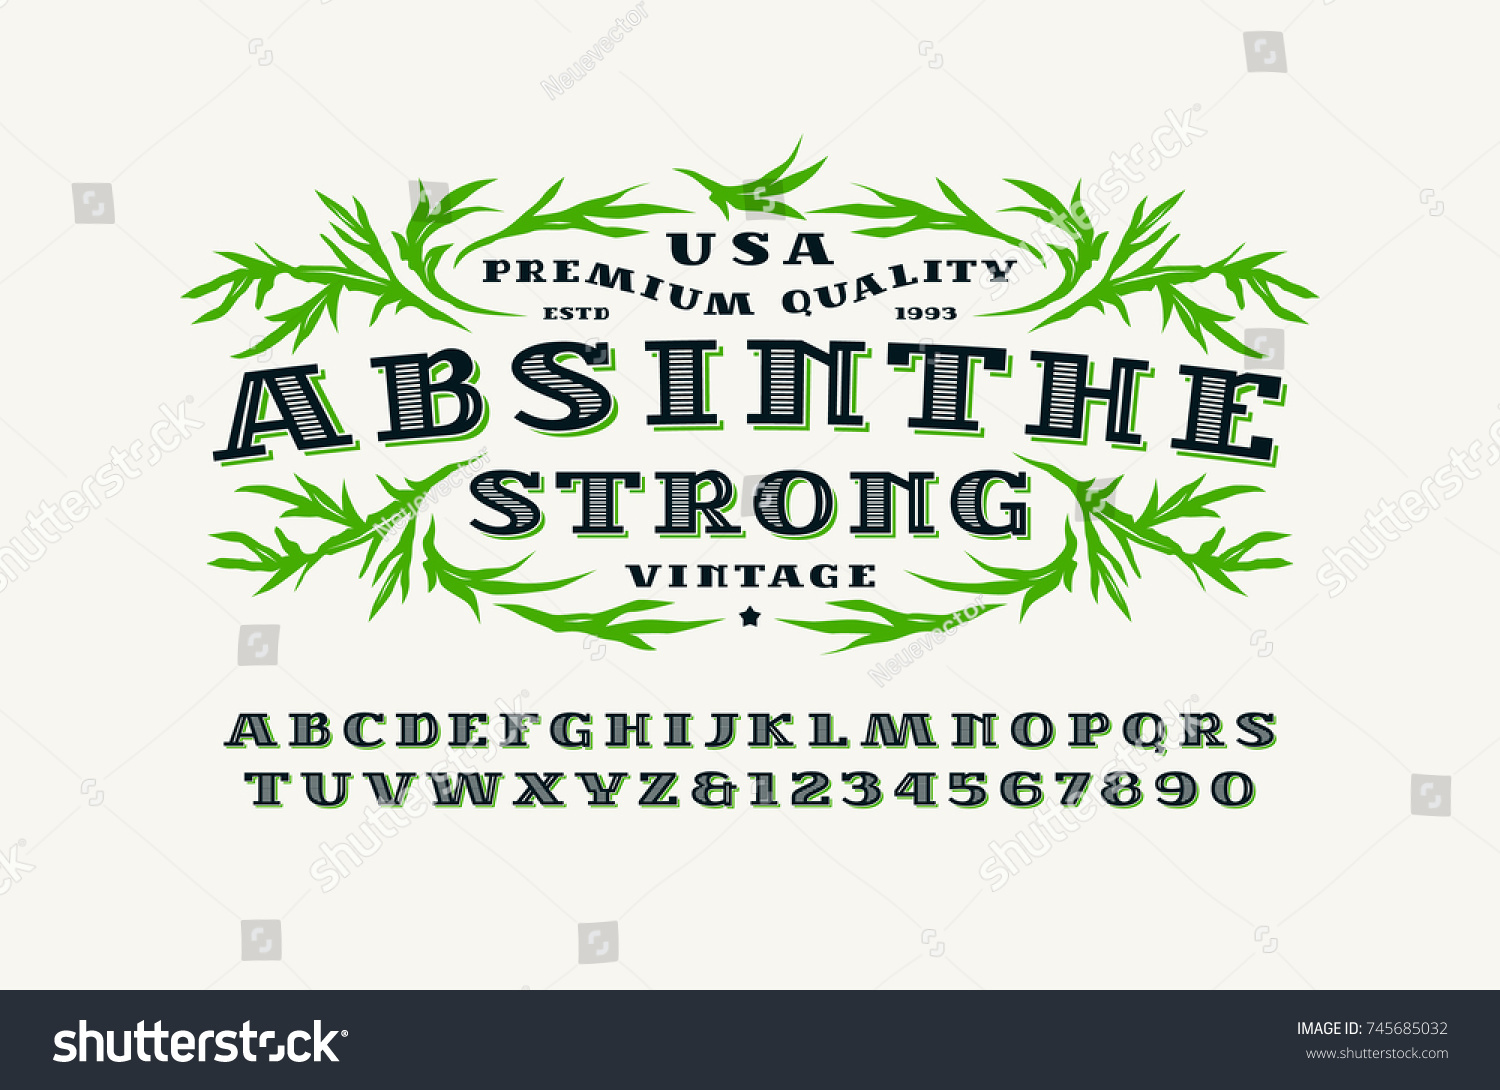 Ornate Serif Font Retro Style Absinthe Stock Photo (Photo, Vector ...